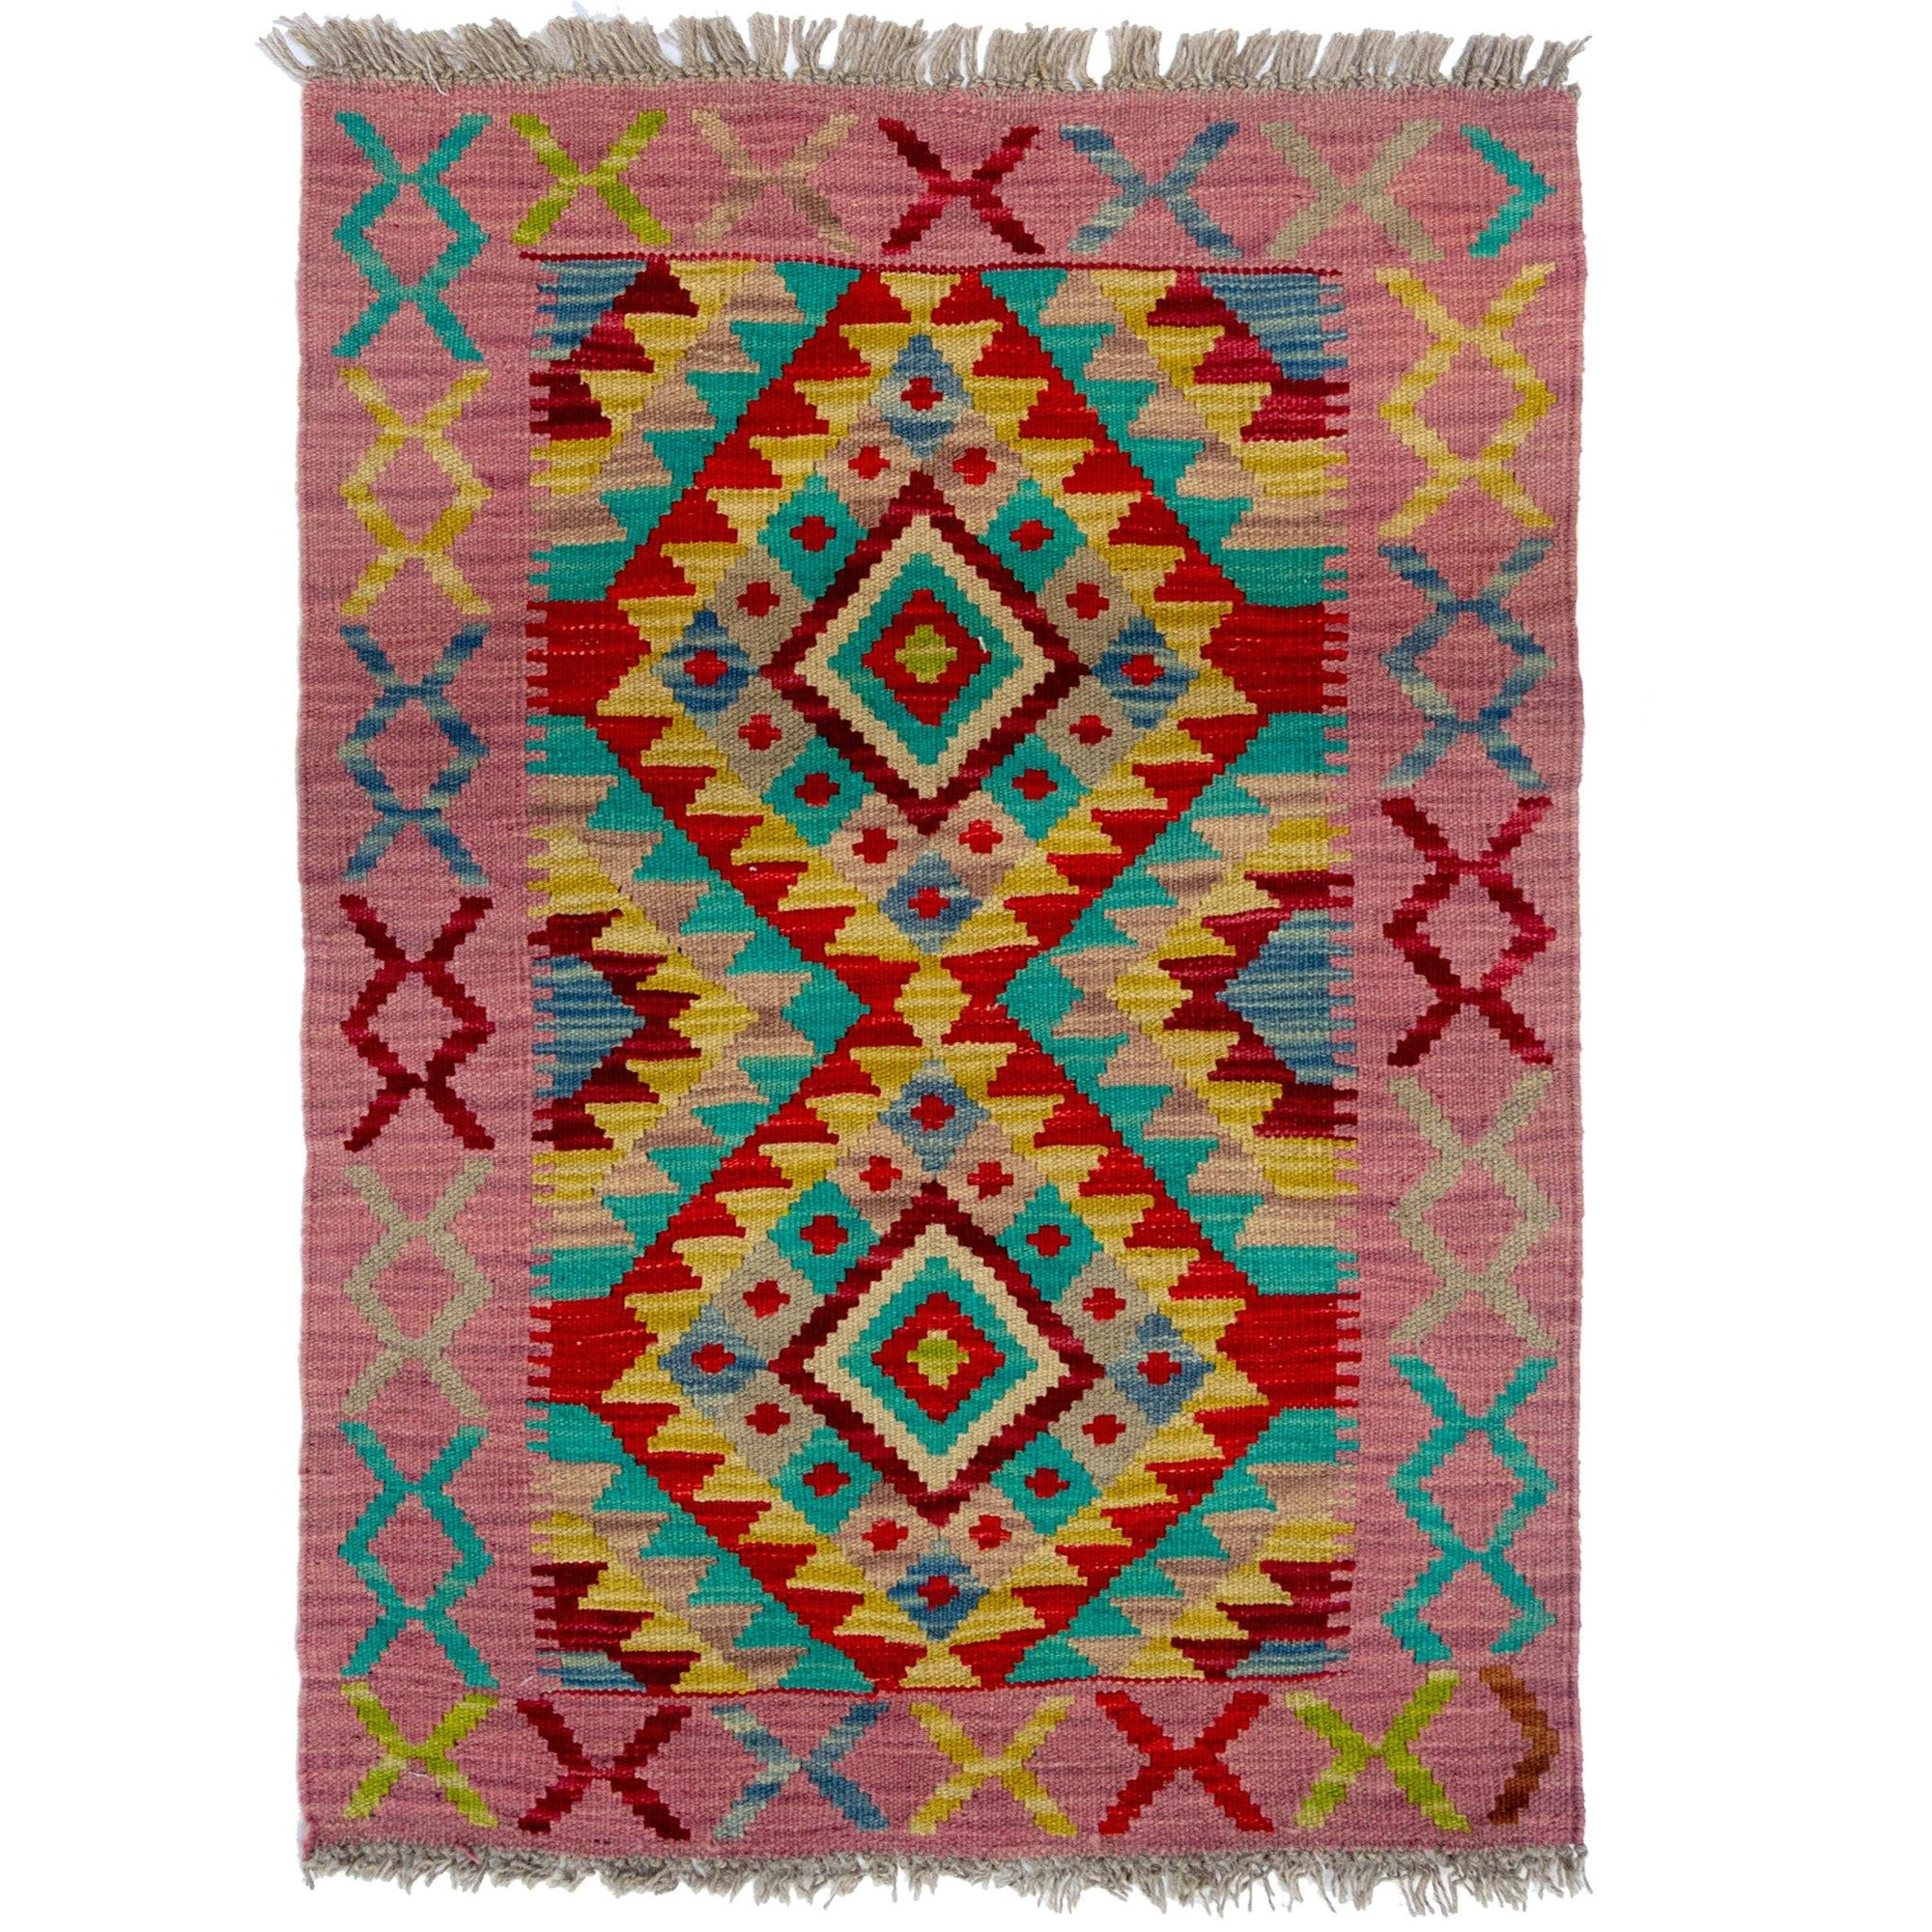 Hand-woven Afghan Chobi Kilim Persian-Rug | House-of-Haghi | NewMarket | Auckland | NZ | Handmade Persian Rugs | Hand Knotted Persian Rugs